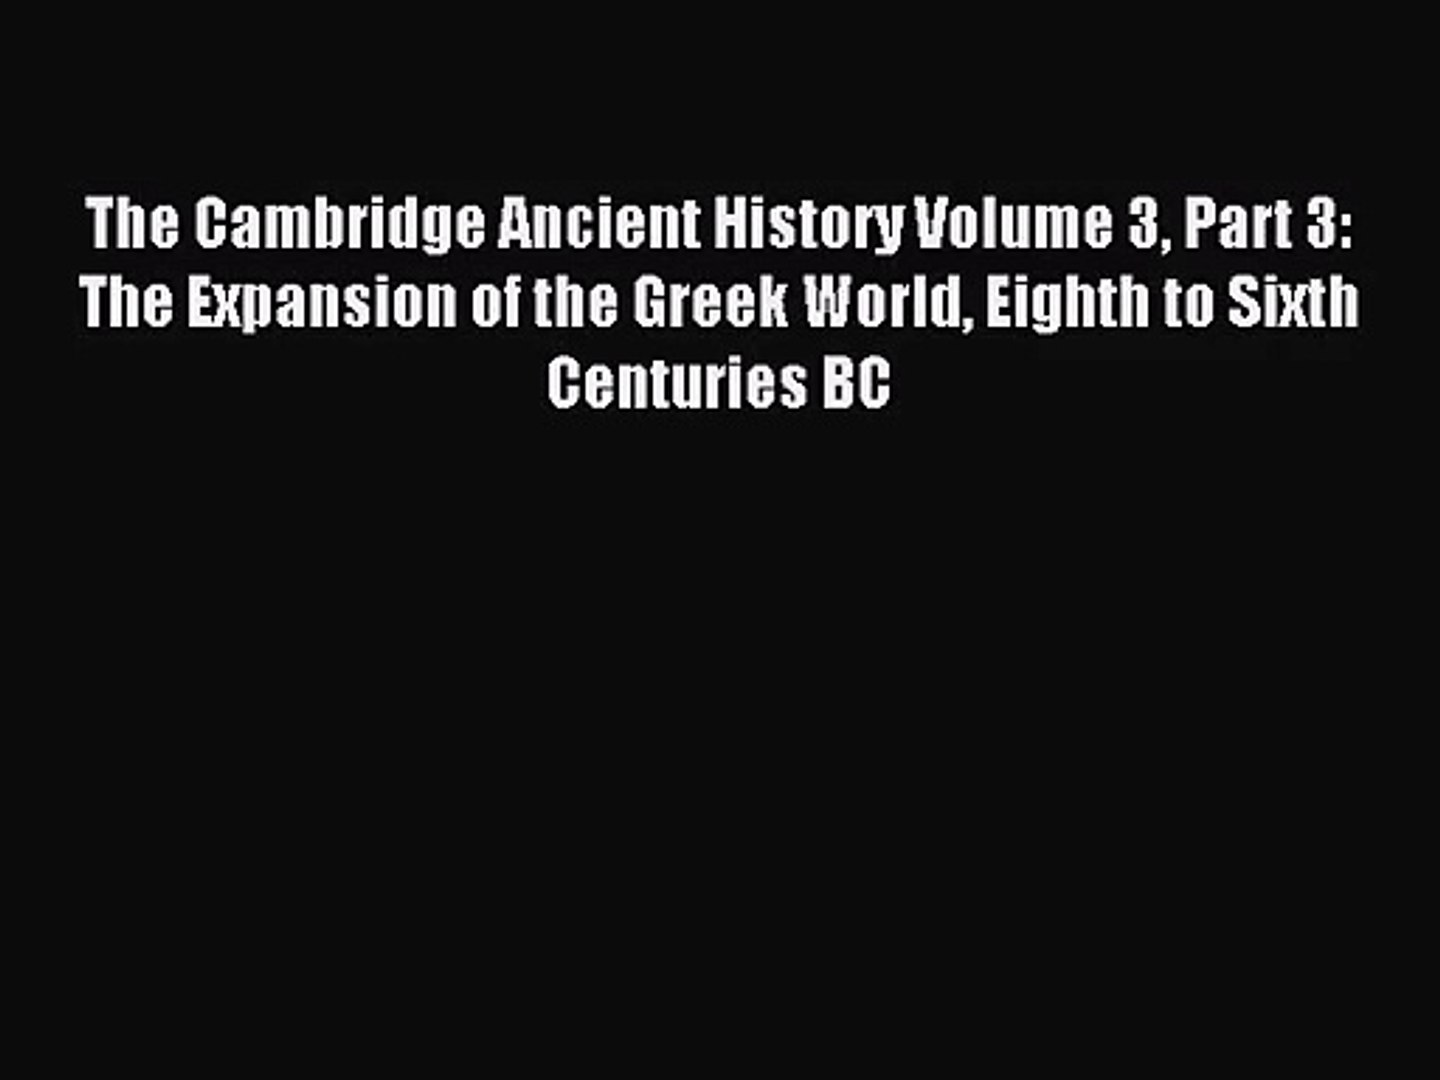 [PDF Download] The Cambridge Ancient History Volume 3 Part 3: The Expansion of the Greek World